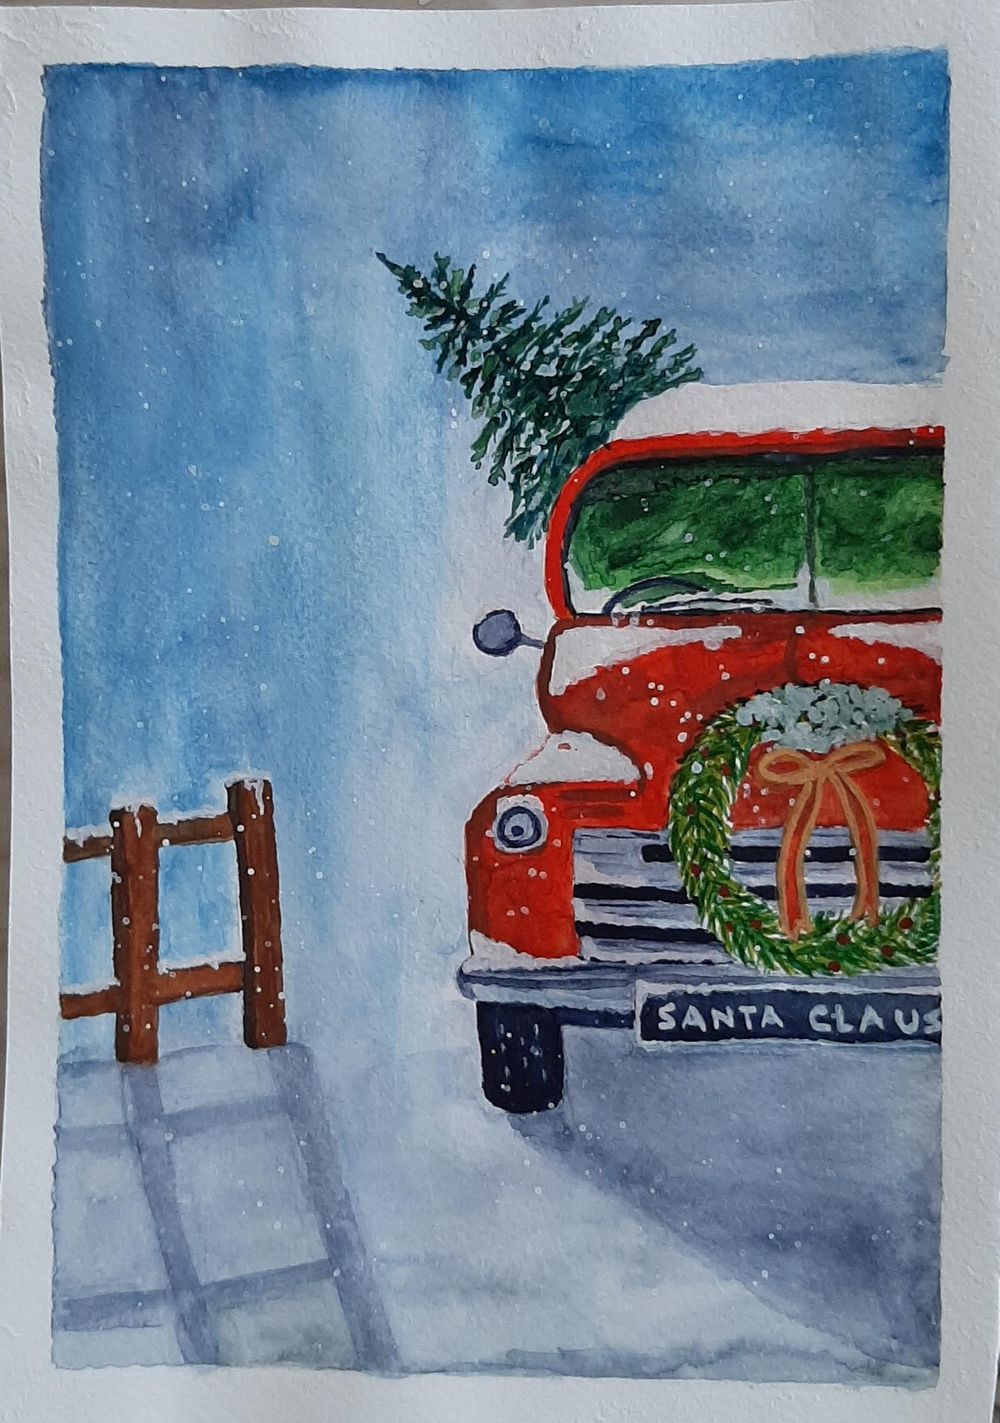 Christmas Paintings - image 2 - student project